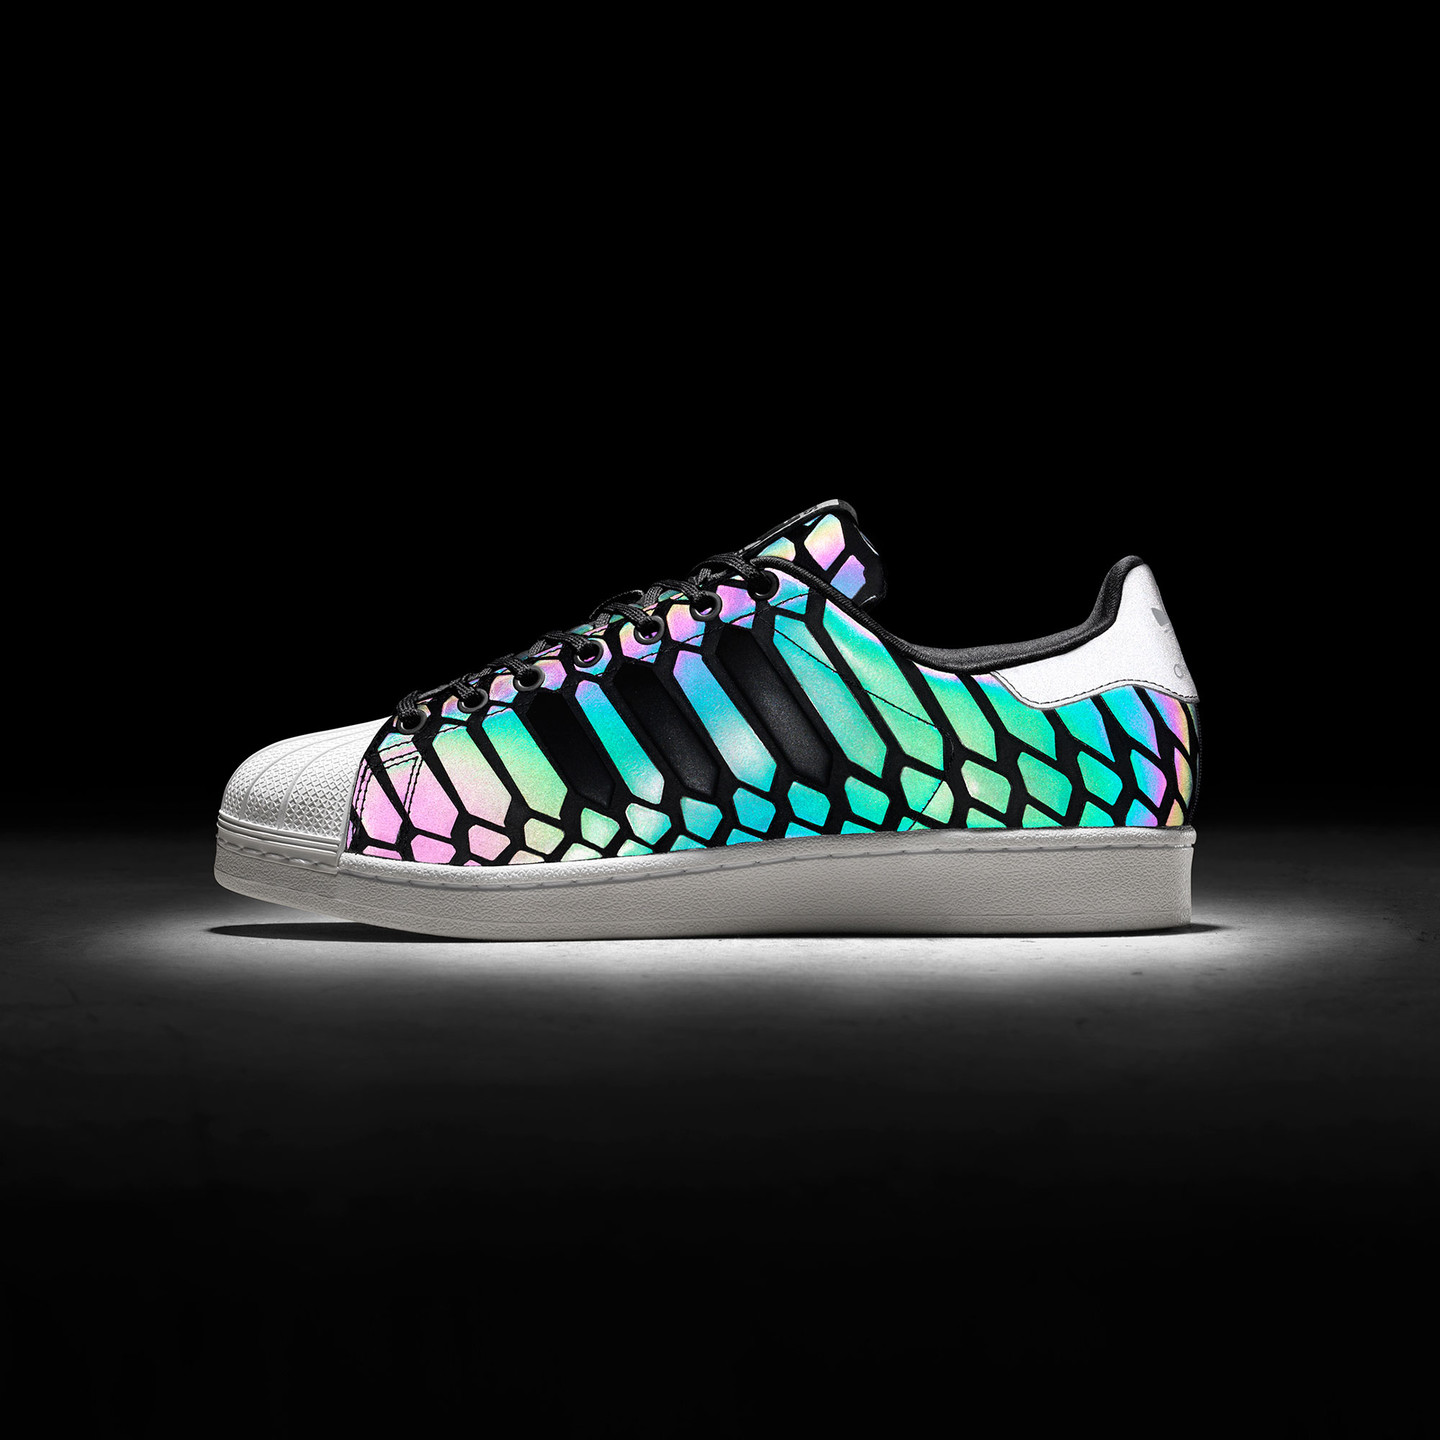 Adidas Superstar Xeno Pack Cblack / Supcol / Ftwwht D69366-36